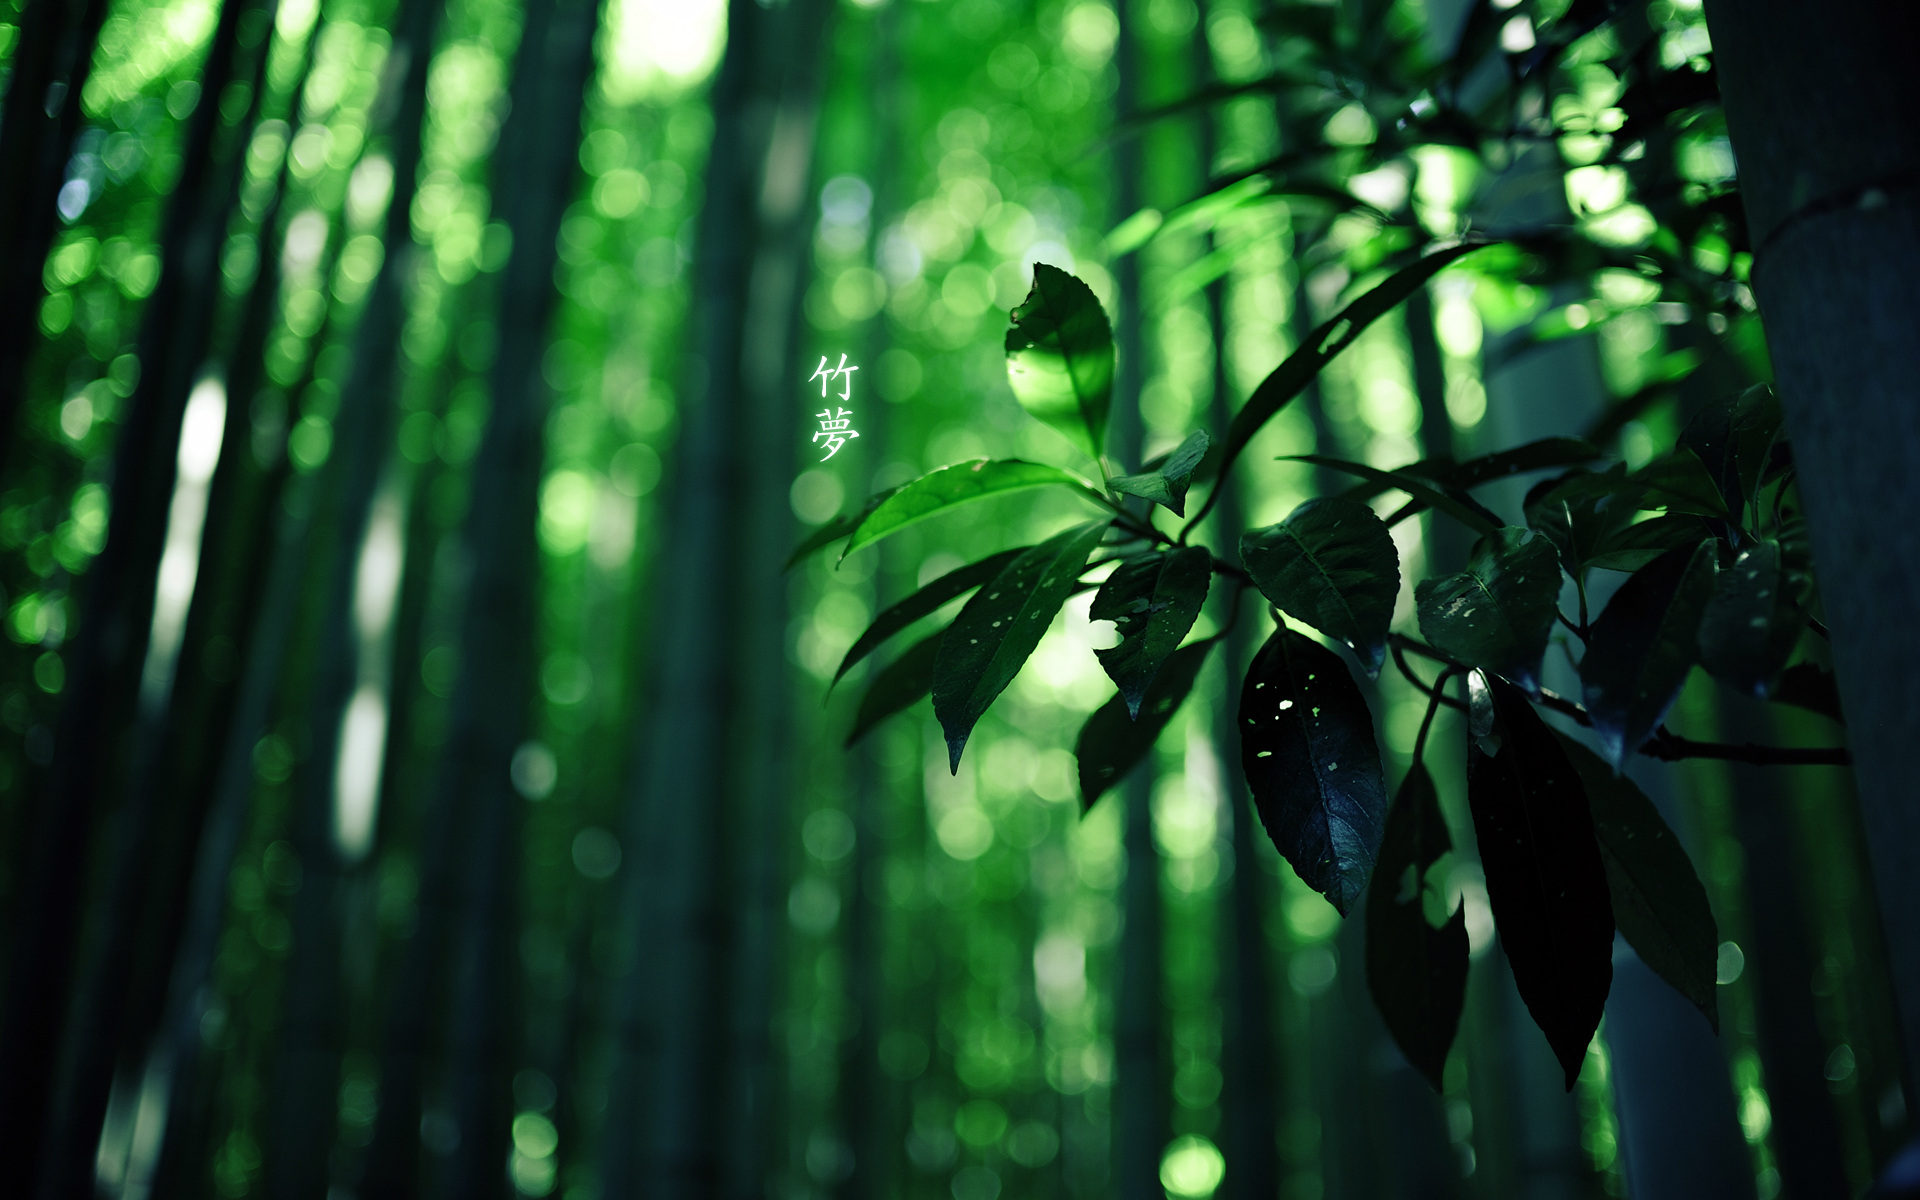 bamboo wallpaper hd - wallpapersafari